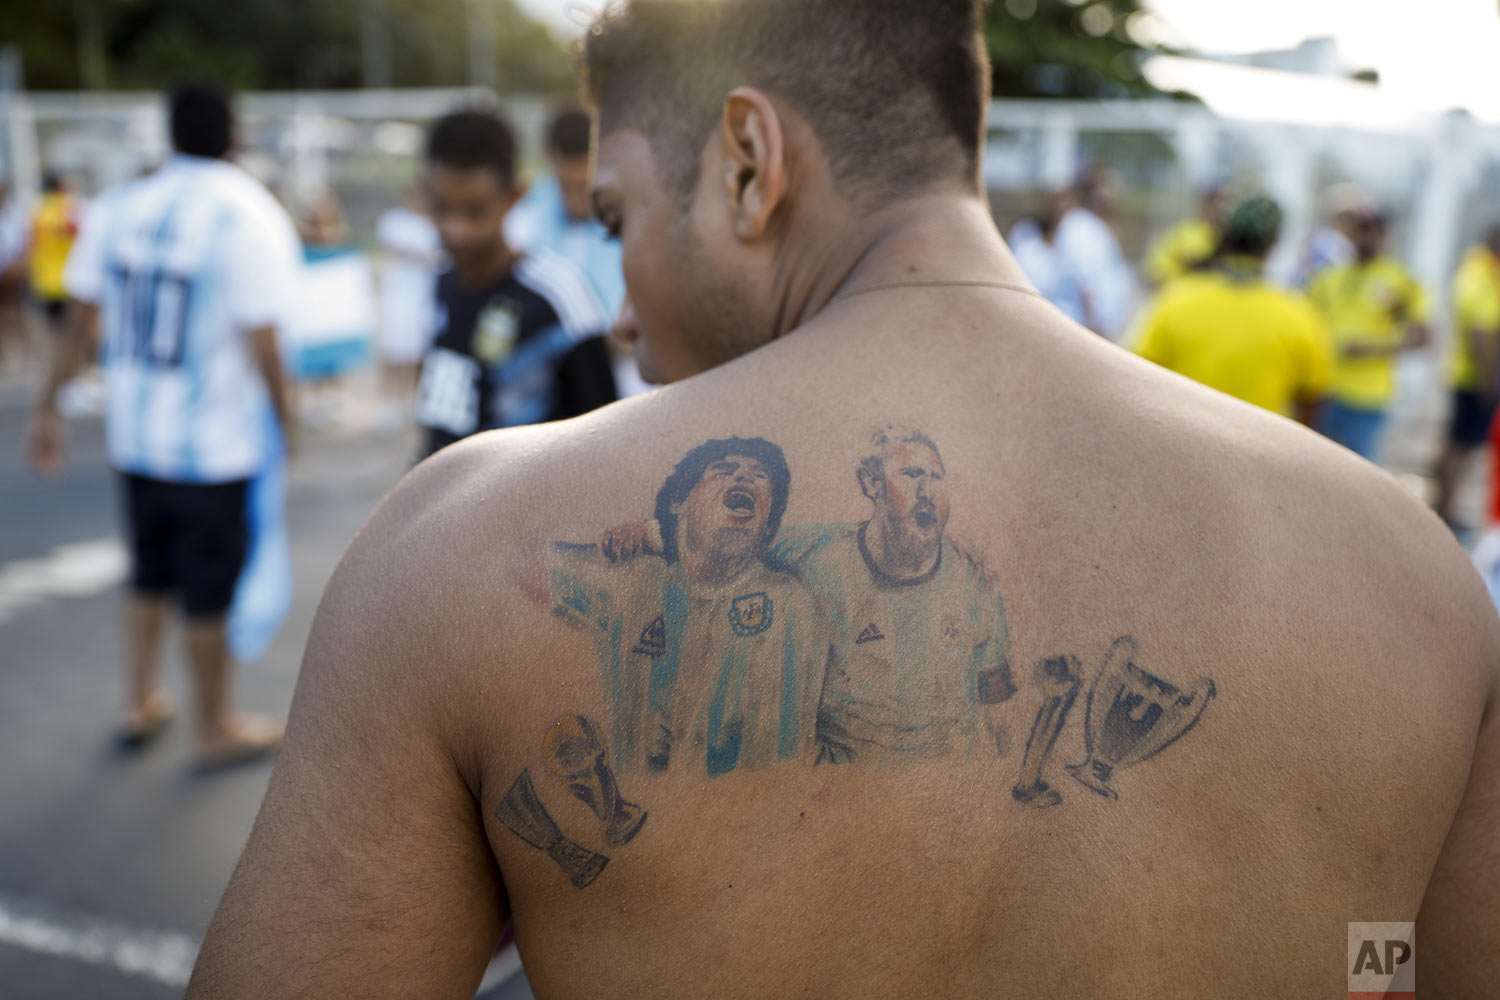 A fan of Argentina shows off his tattoo of soccer star Diego Maradona and Lionel Messi outside Arena Fonte Nova prior to a Copa America Group B soccer match between Colombia and Argentina in Salvador, Brazil, Saturday, June 15, 2019. (AP Photo/Natacha Pisarenko)